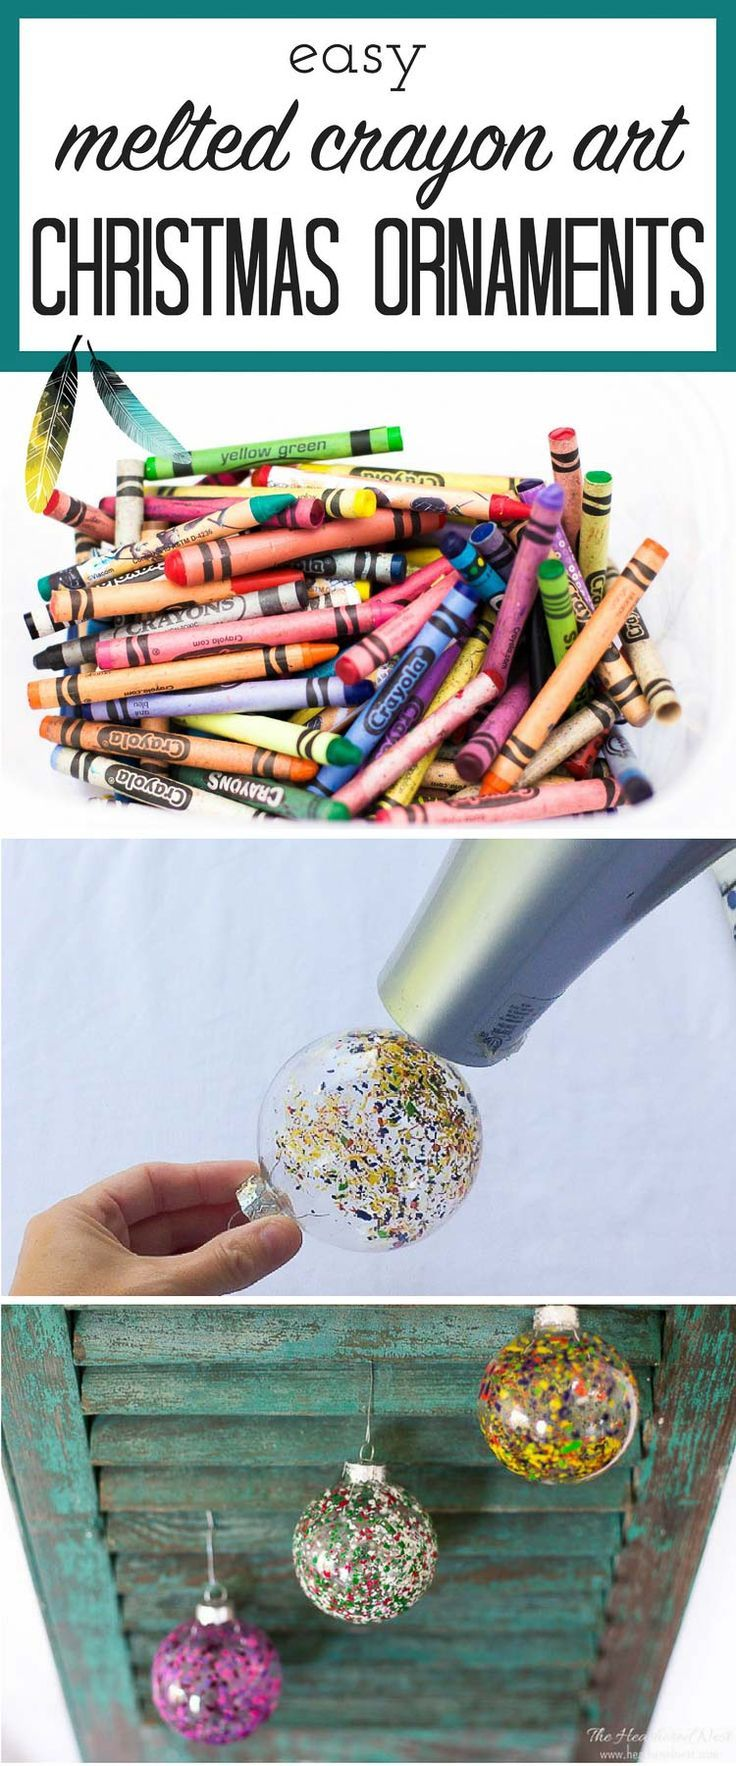 Melted crayon art diy christmas ornaments pinterest melted